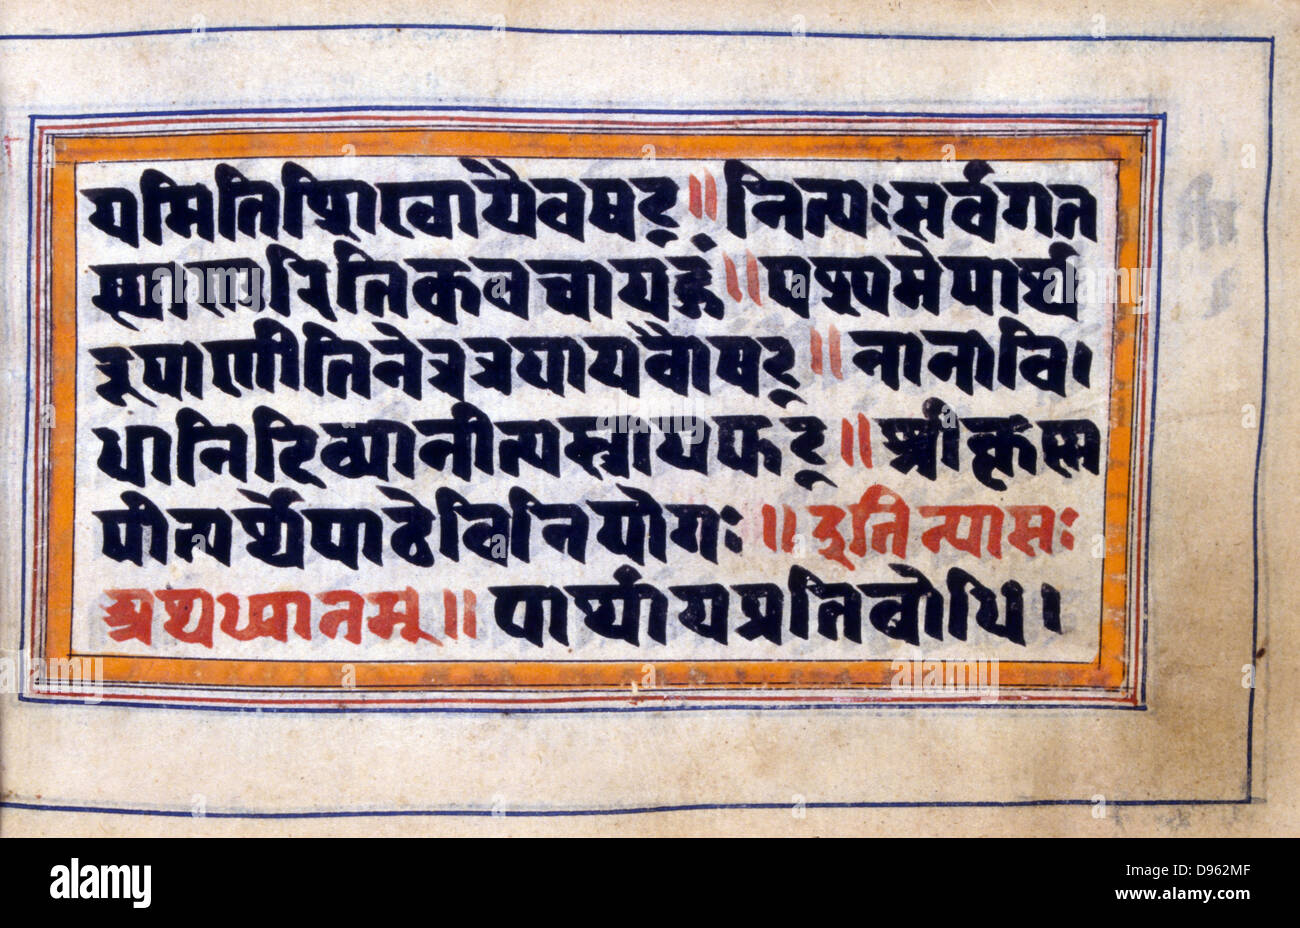 North Indian manuscript, 18-19 century, recounting episodes in life of Krishna.  From Bhagavad-Gita. - Stock Image